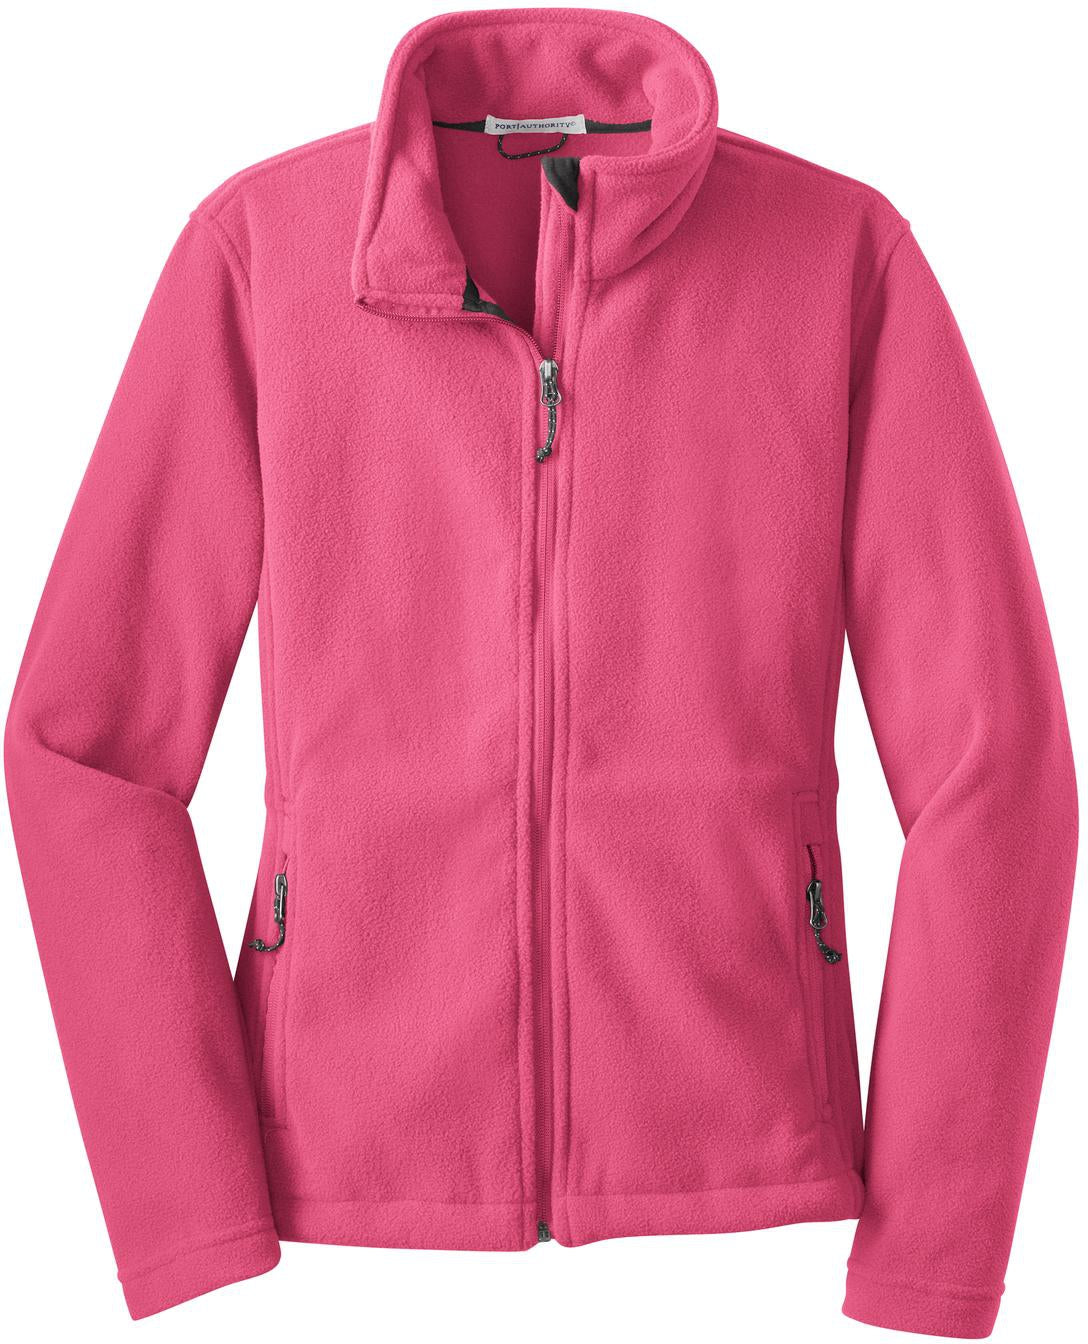 Port Authority-Ladies Value Fleece Jacket-XS-Pink Blossom-Thread Logic